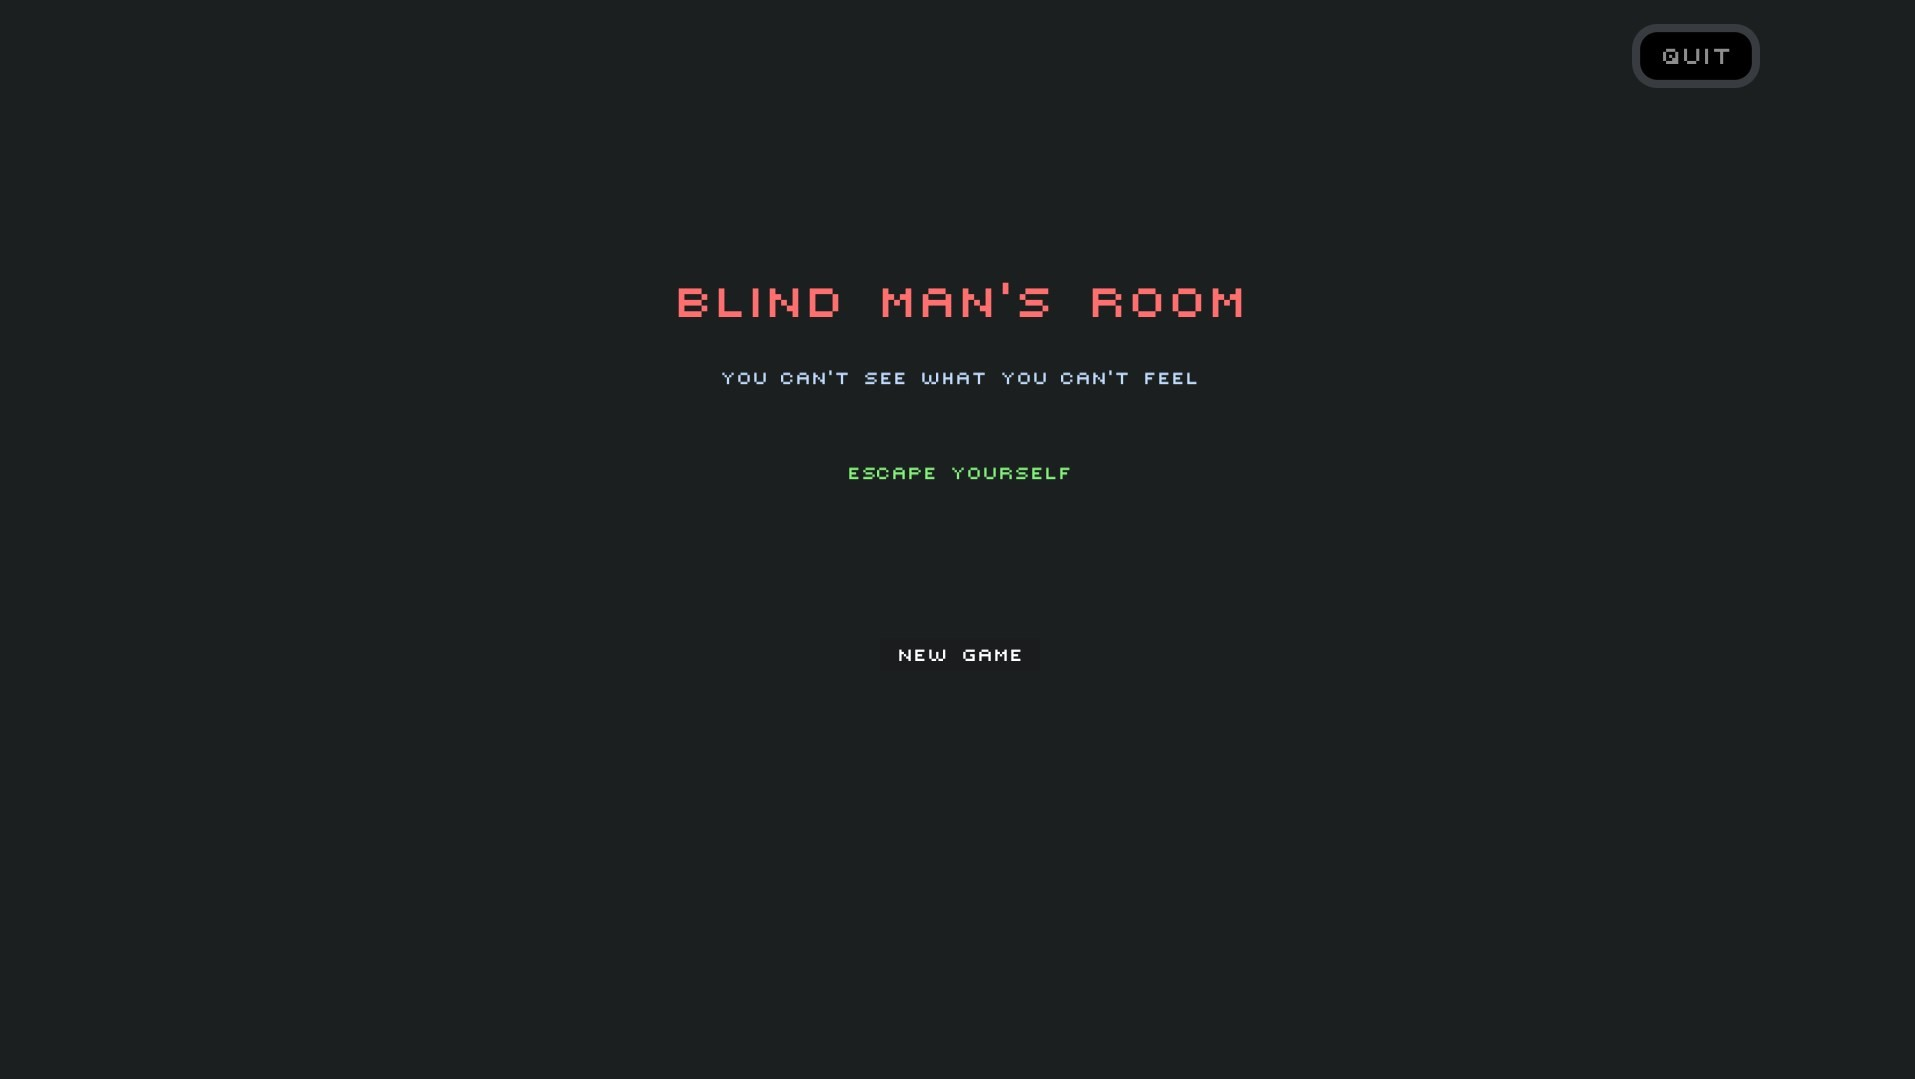 Blind Man's Room